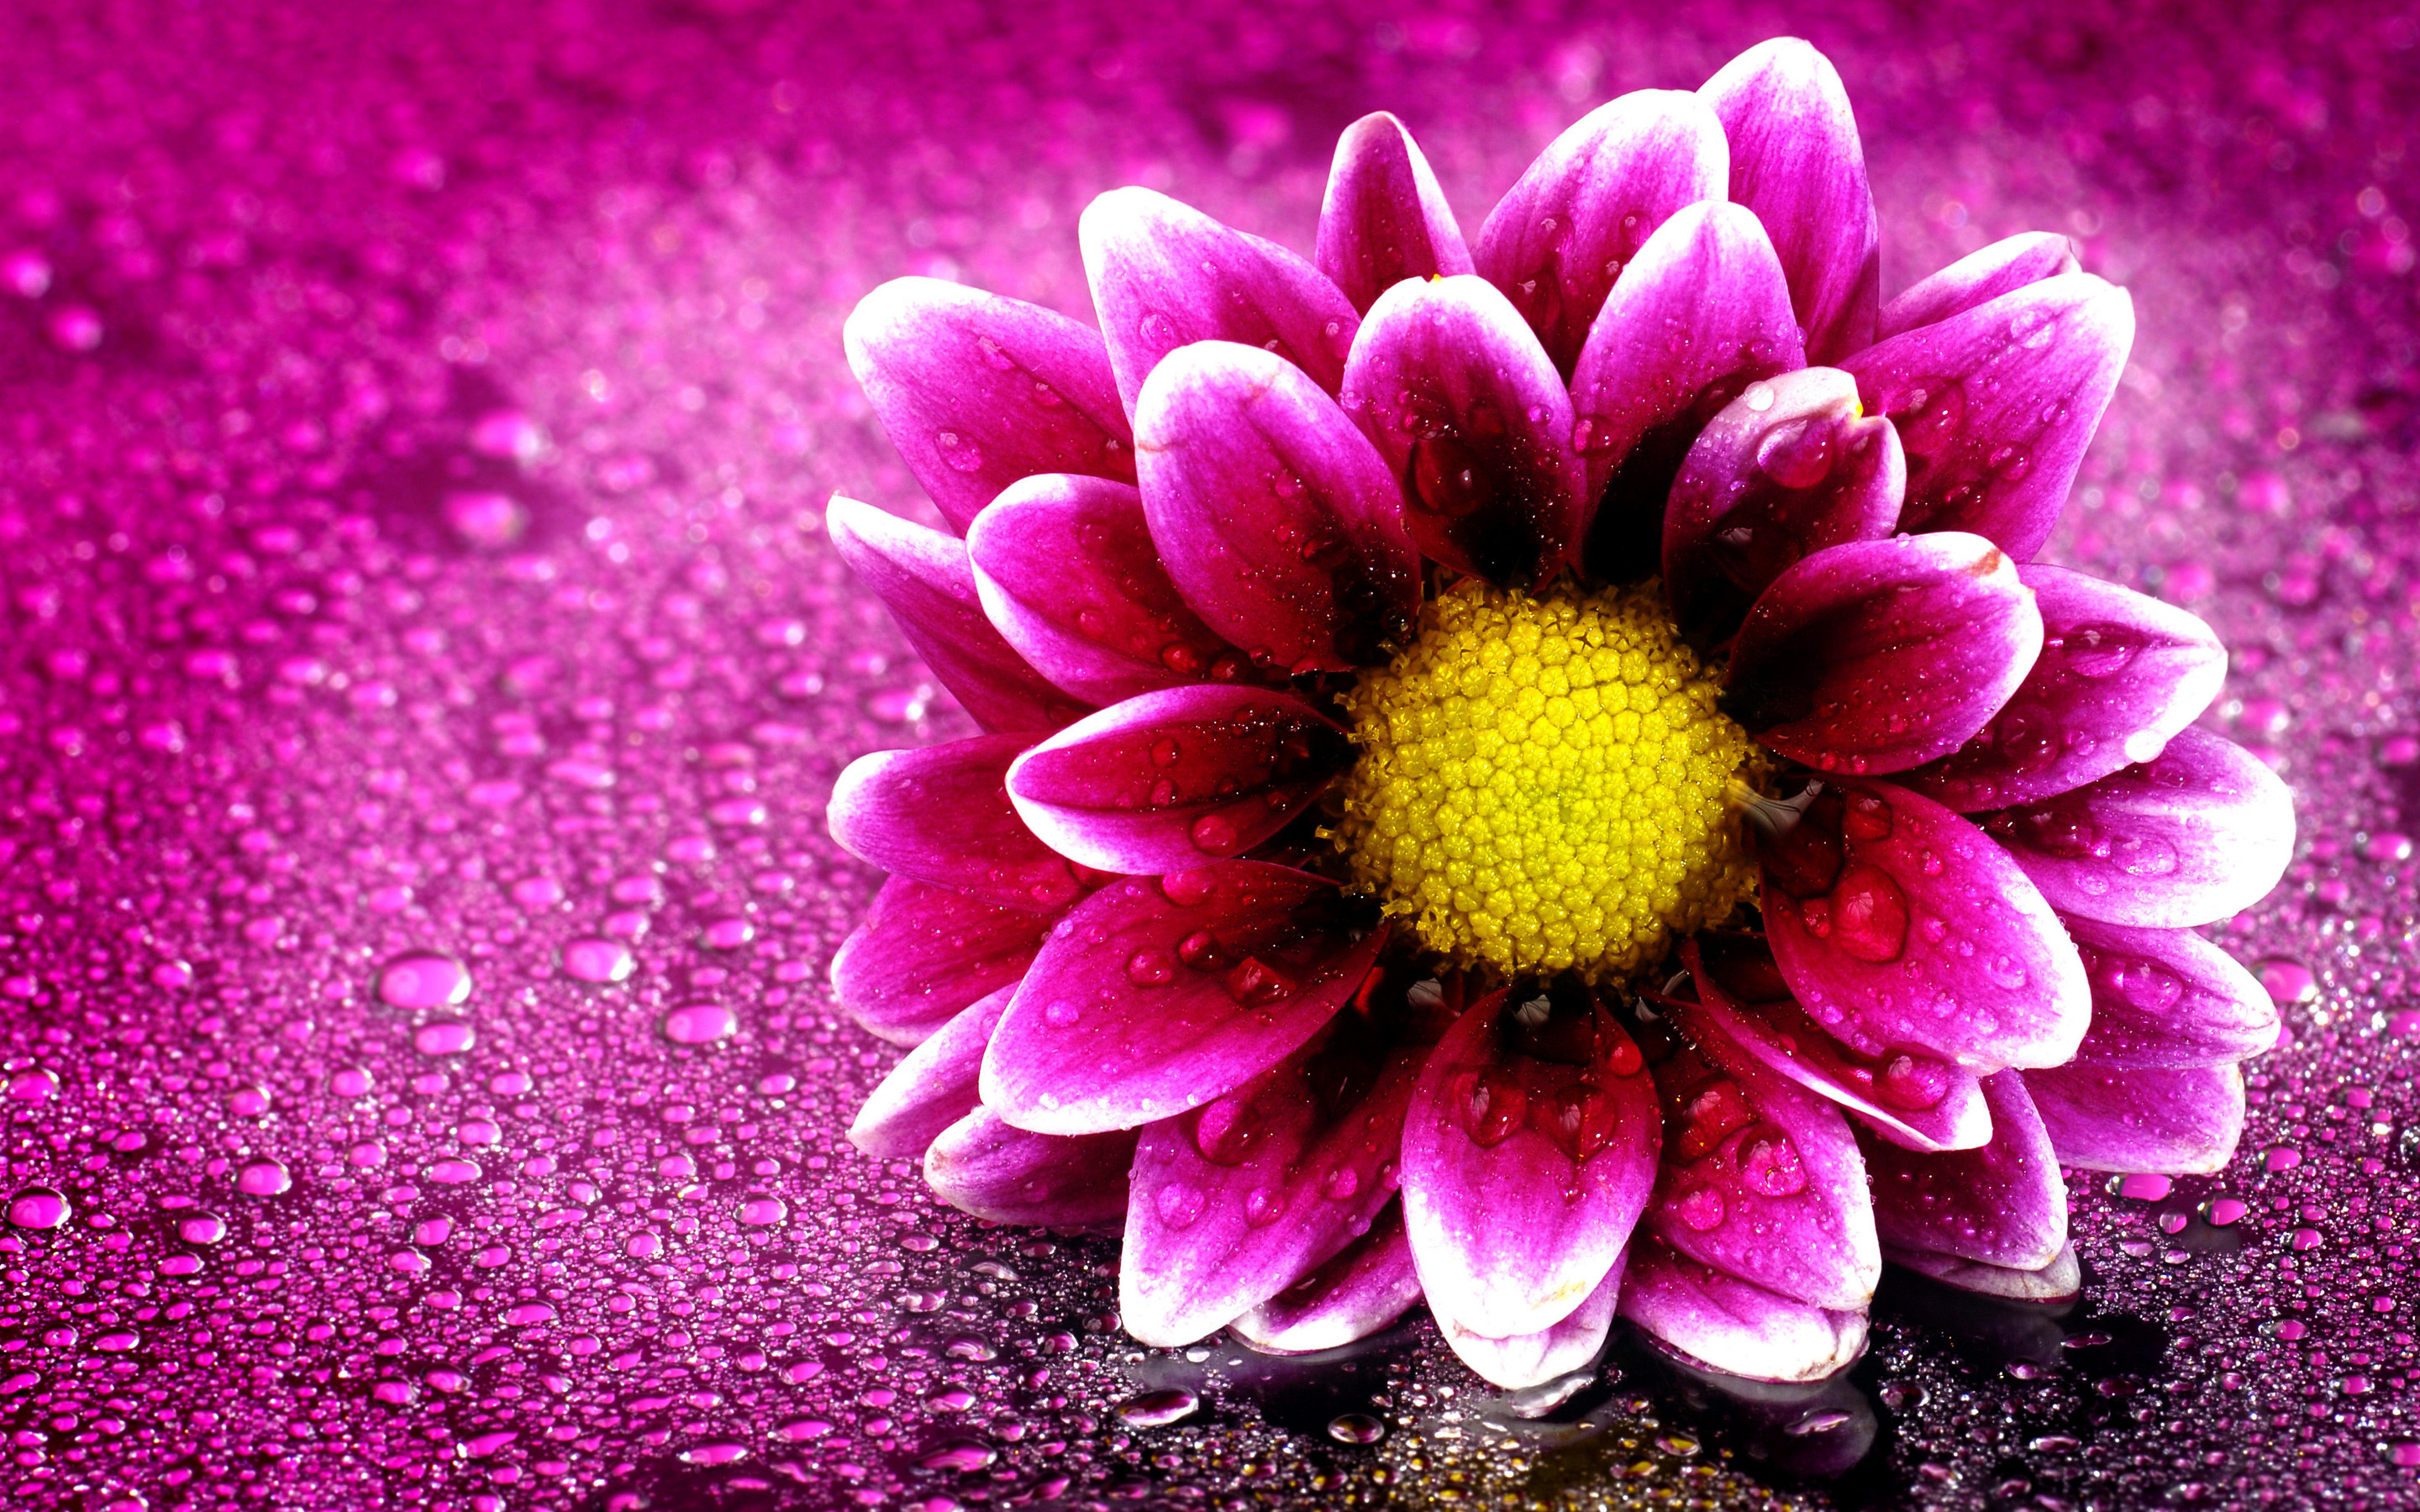 Pink Flower Desktop Wallpaper 183 ① Wallpapertag